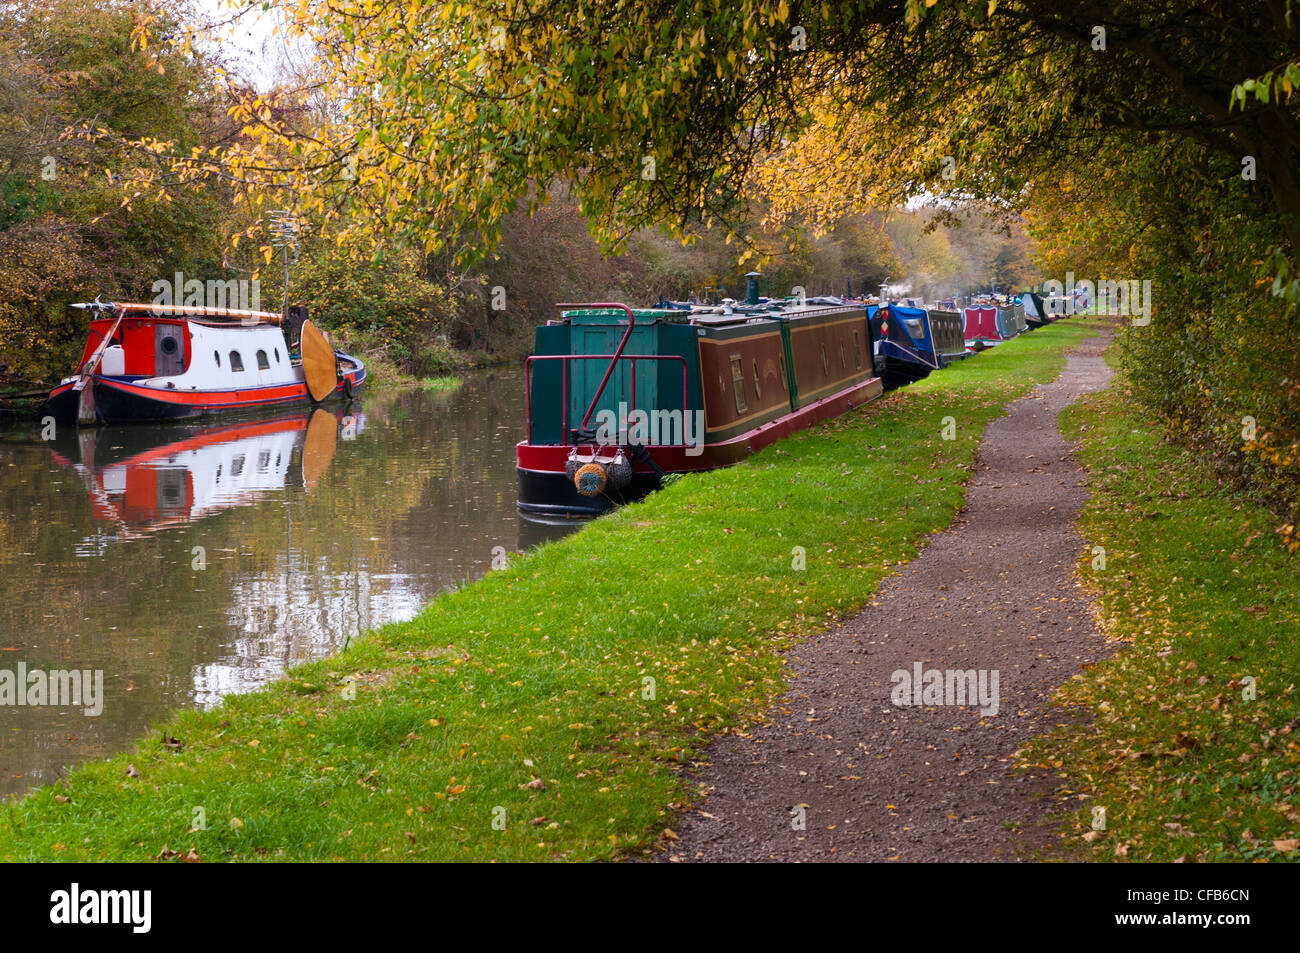 Boats on the Grand Union Canal near Cosgrove, Northamptonshire, England, UK. - Stock Image